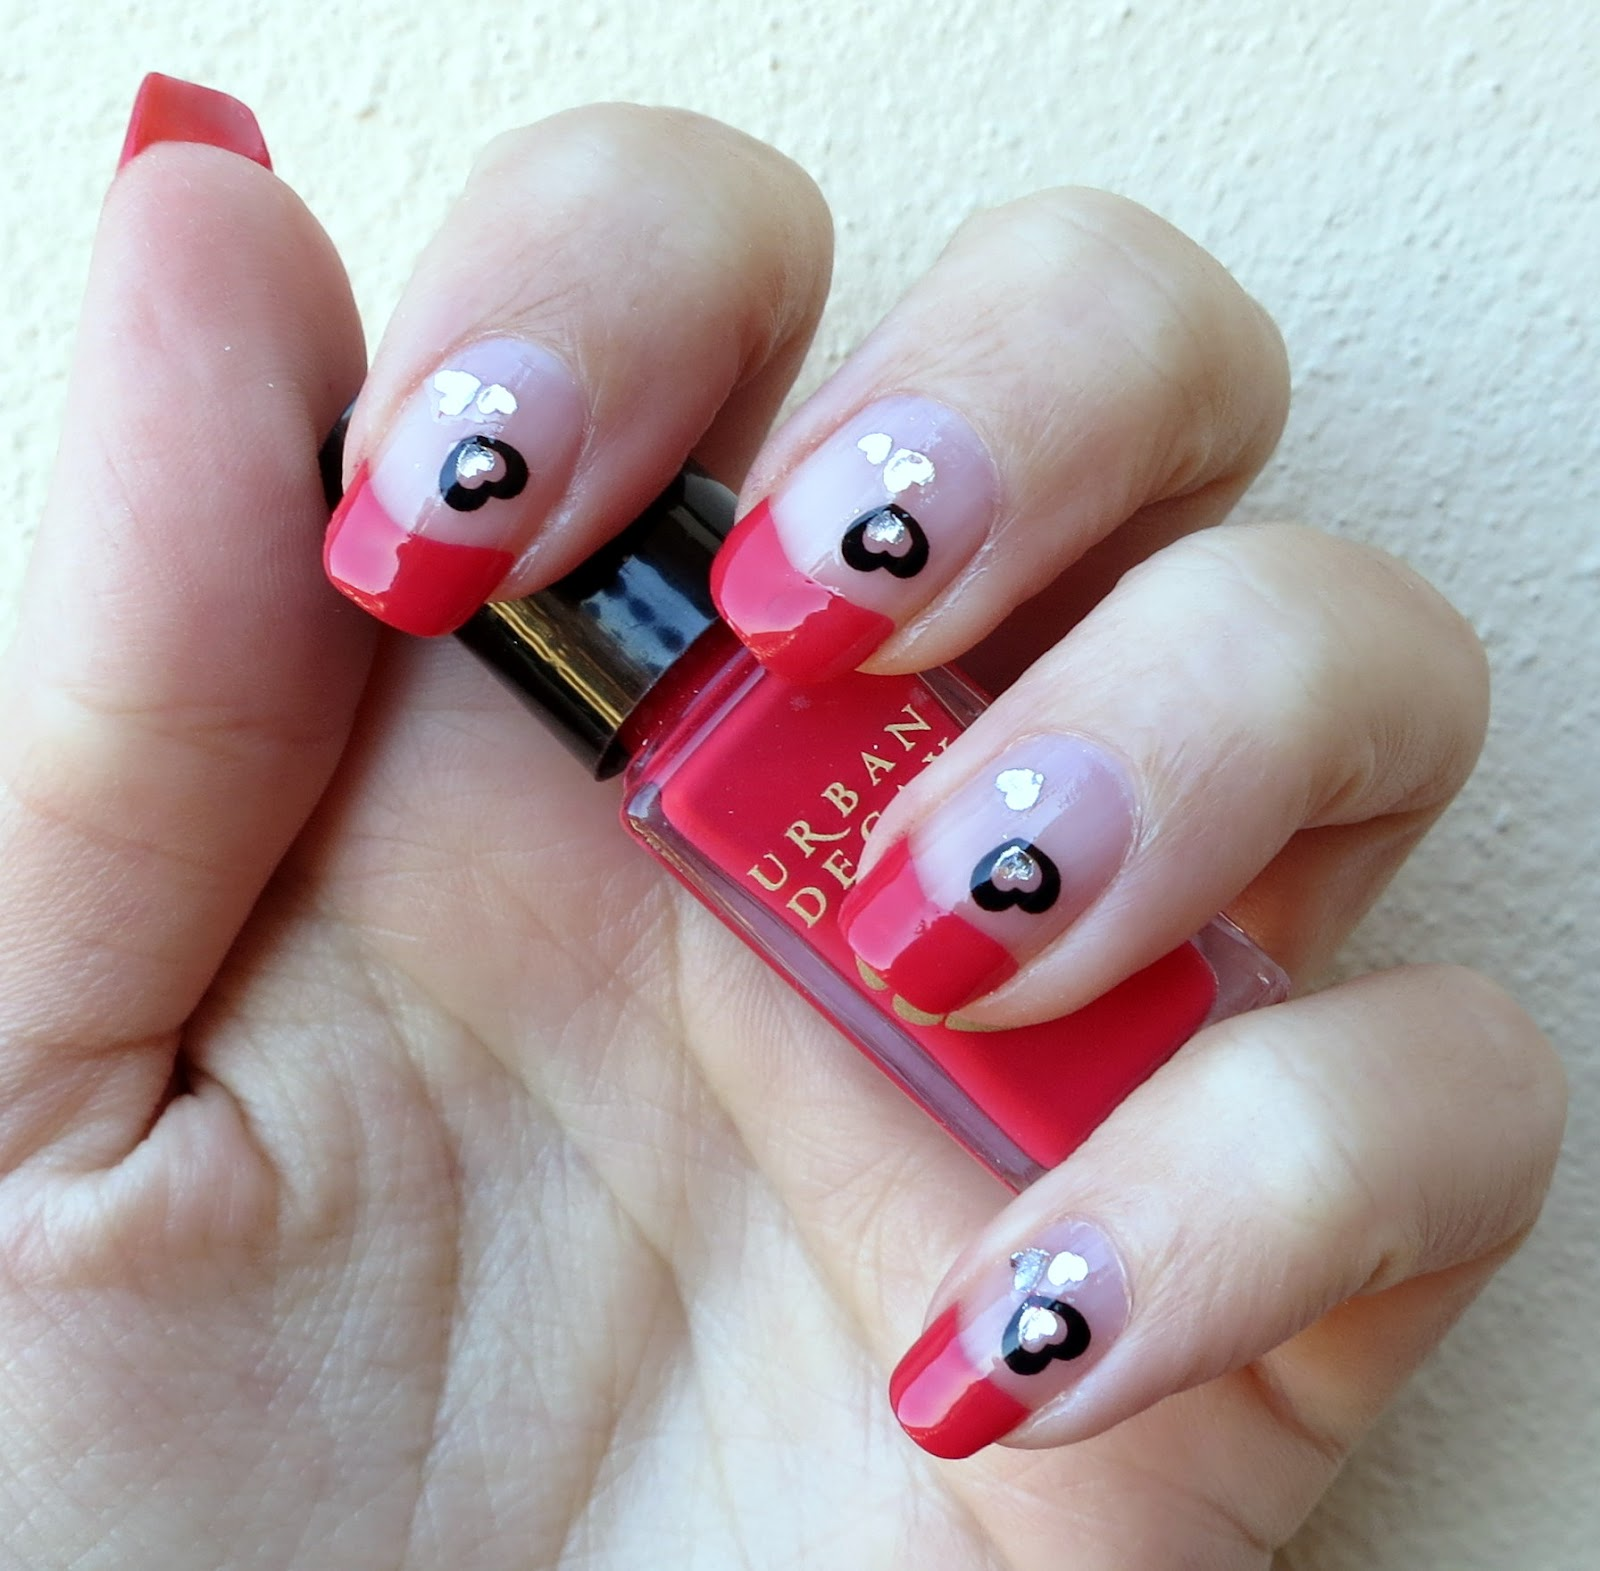 Rs Nail: Le Ricette Di Nonna Lucia: Fing'rs Nail Art